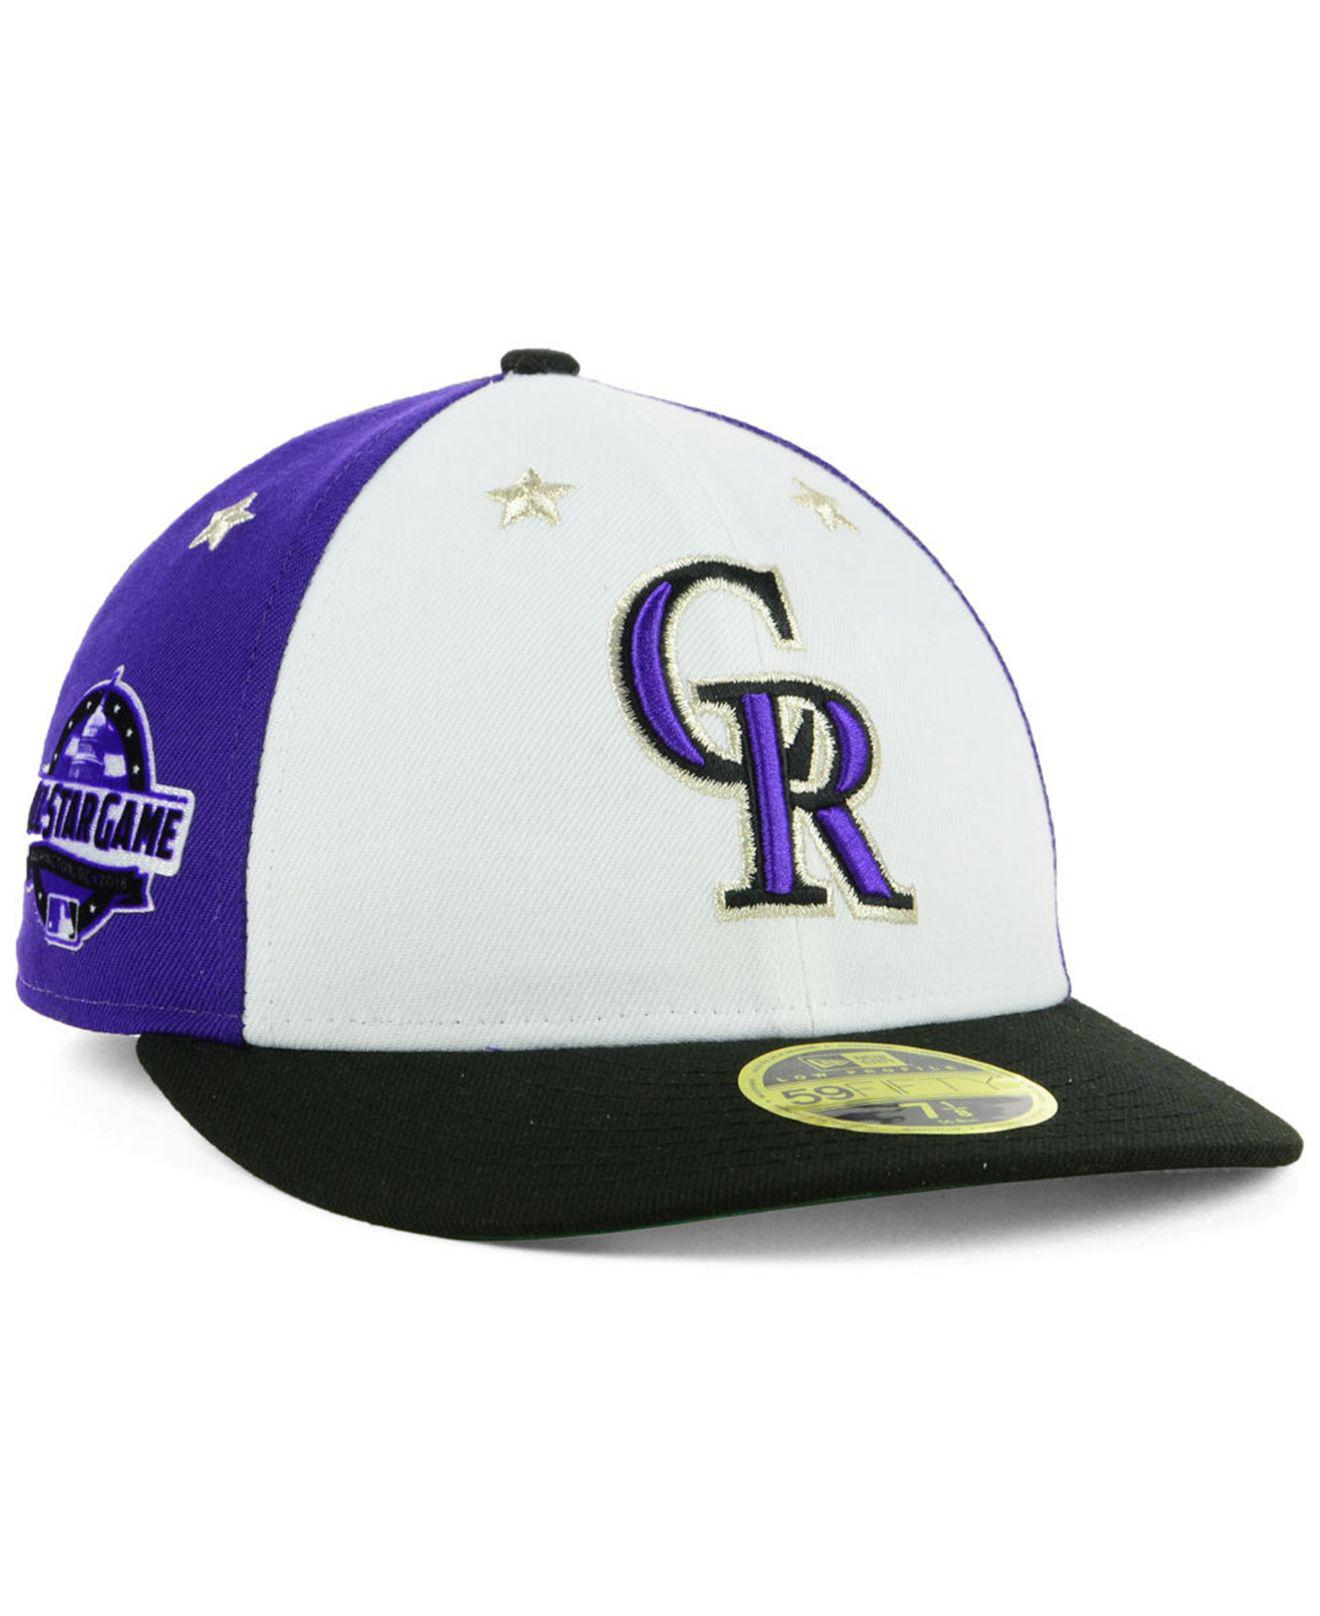 timeless design 035e8 8d48b KTZ Colorado Rockies All Star Game Patch Low Profile 59fifty Fitted ...